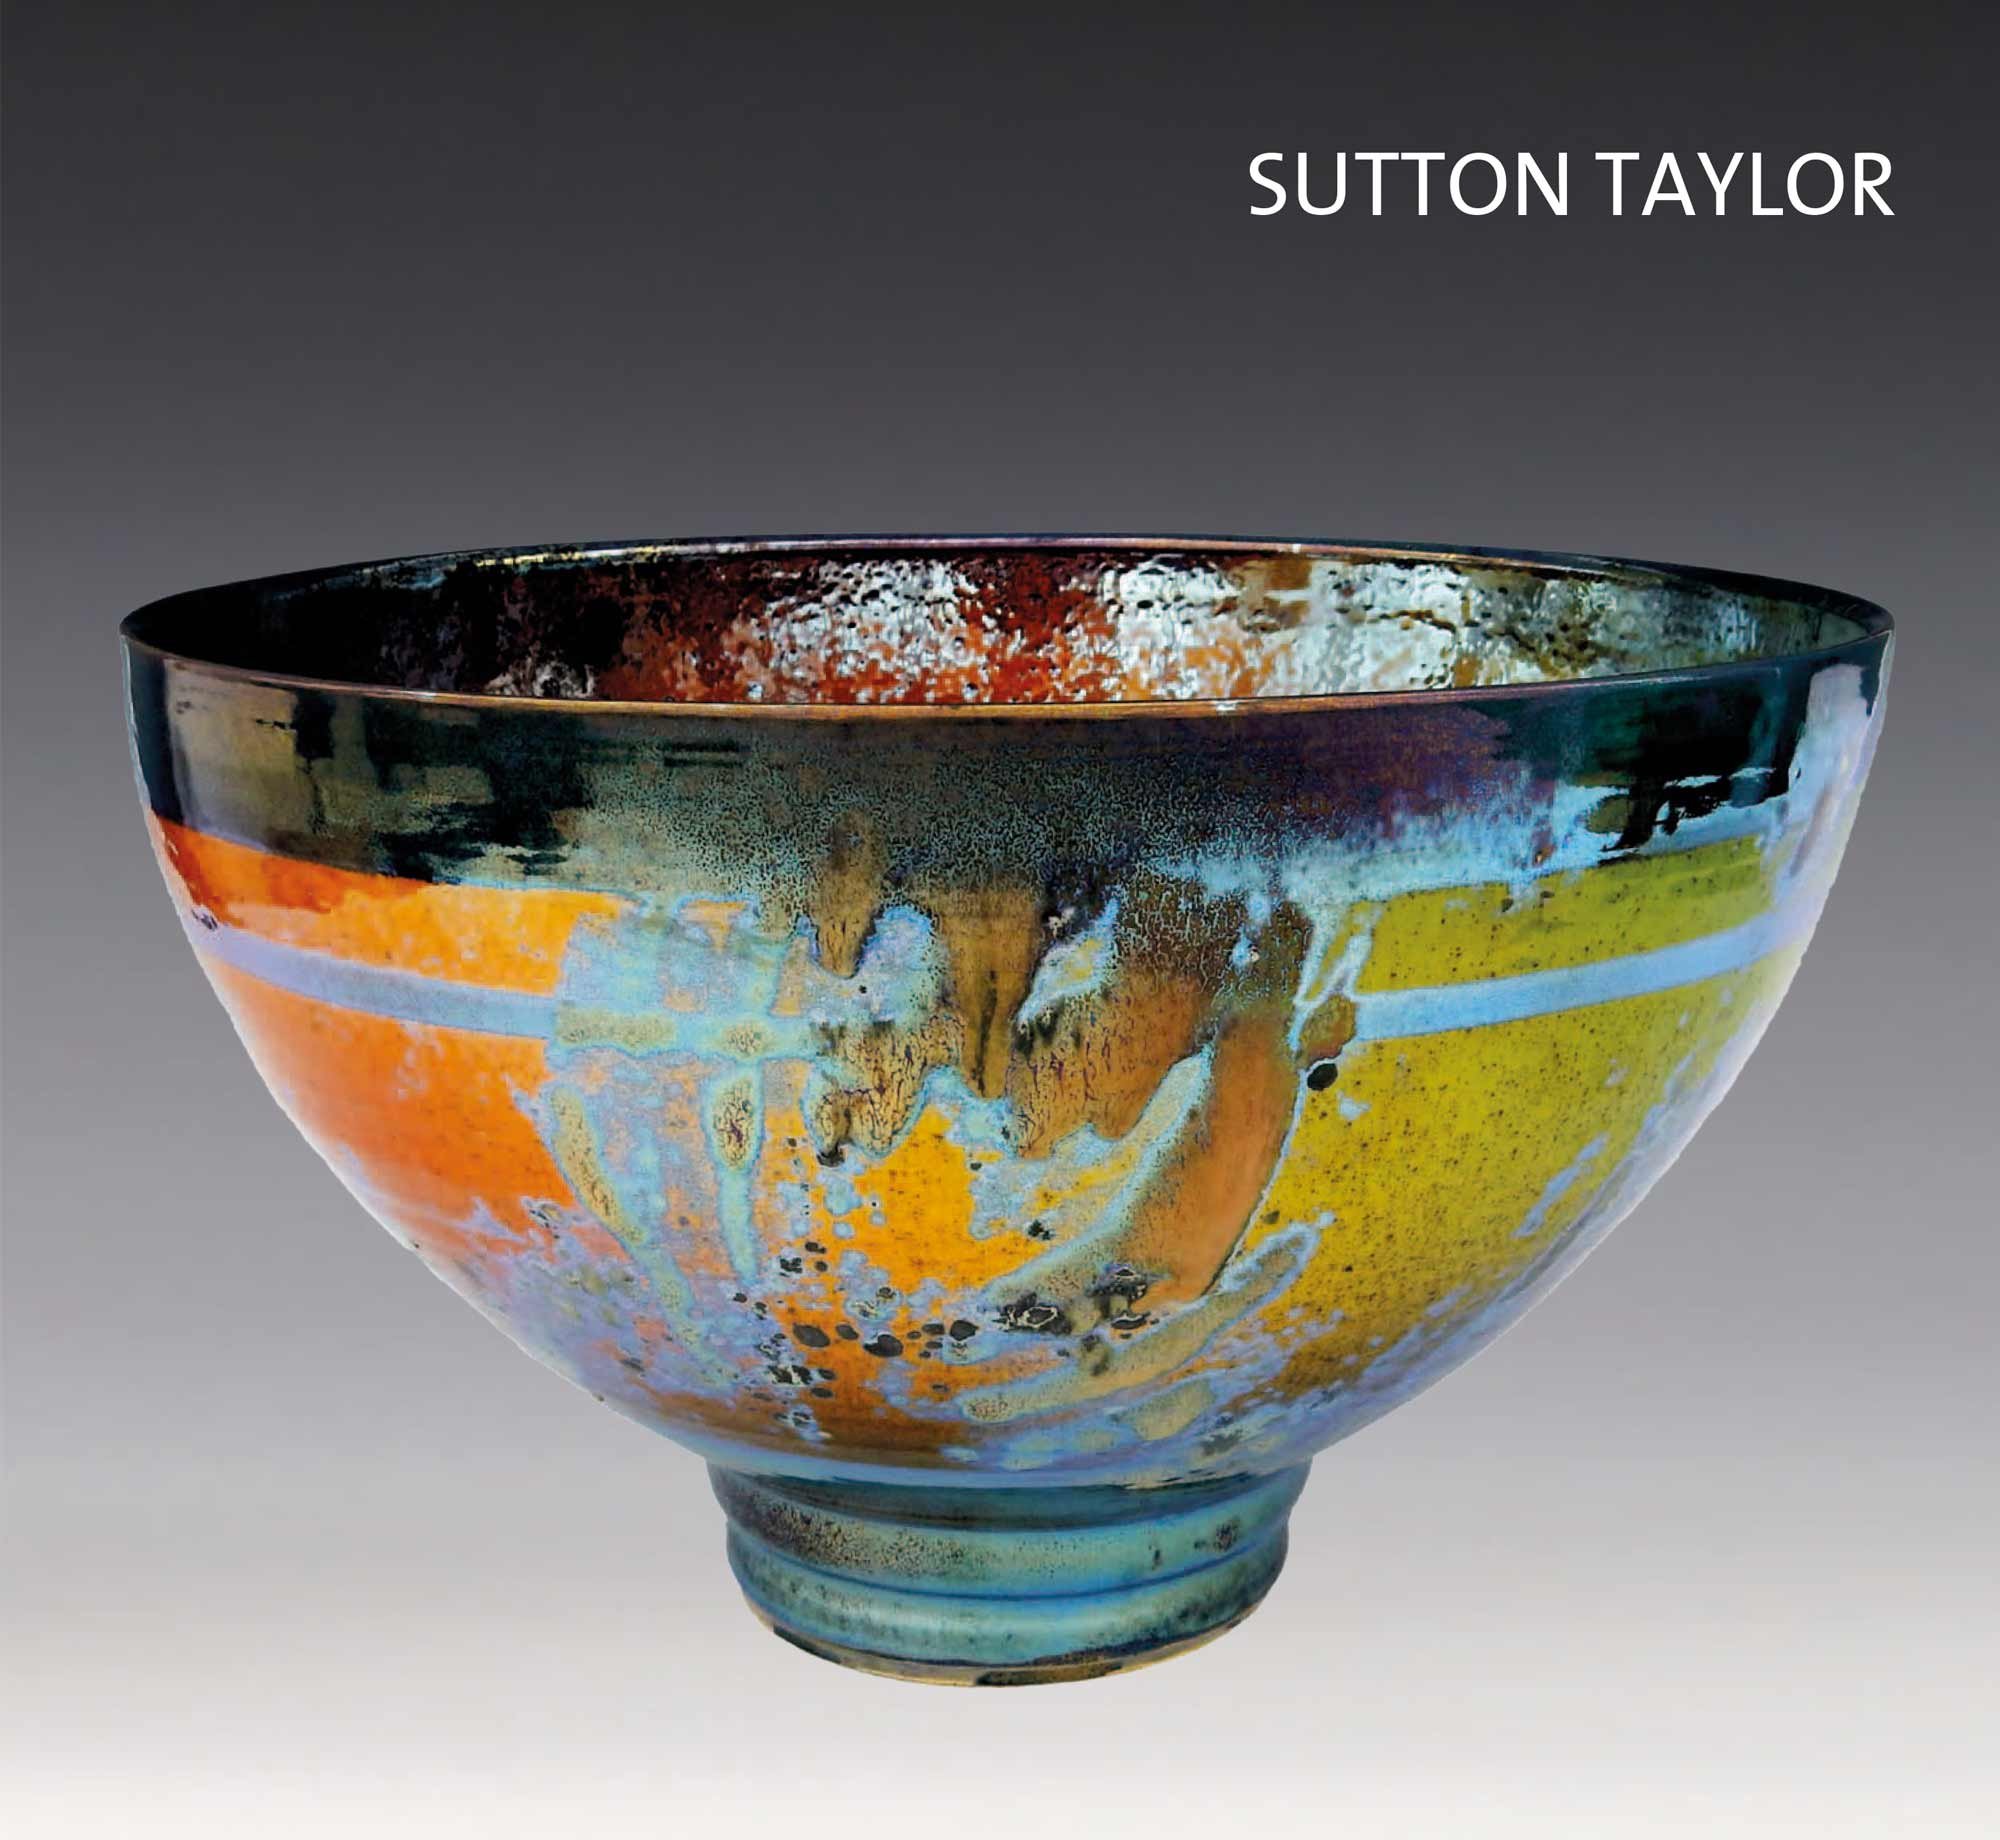 A page from Sutton Taylor Reflections of Summer exhibition publication from Lemon Street Gallery